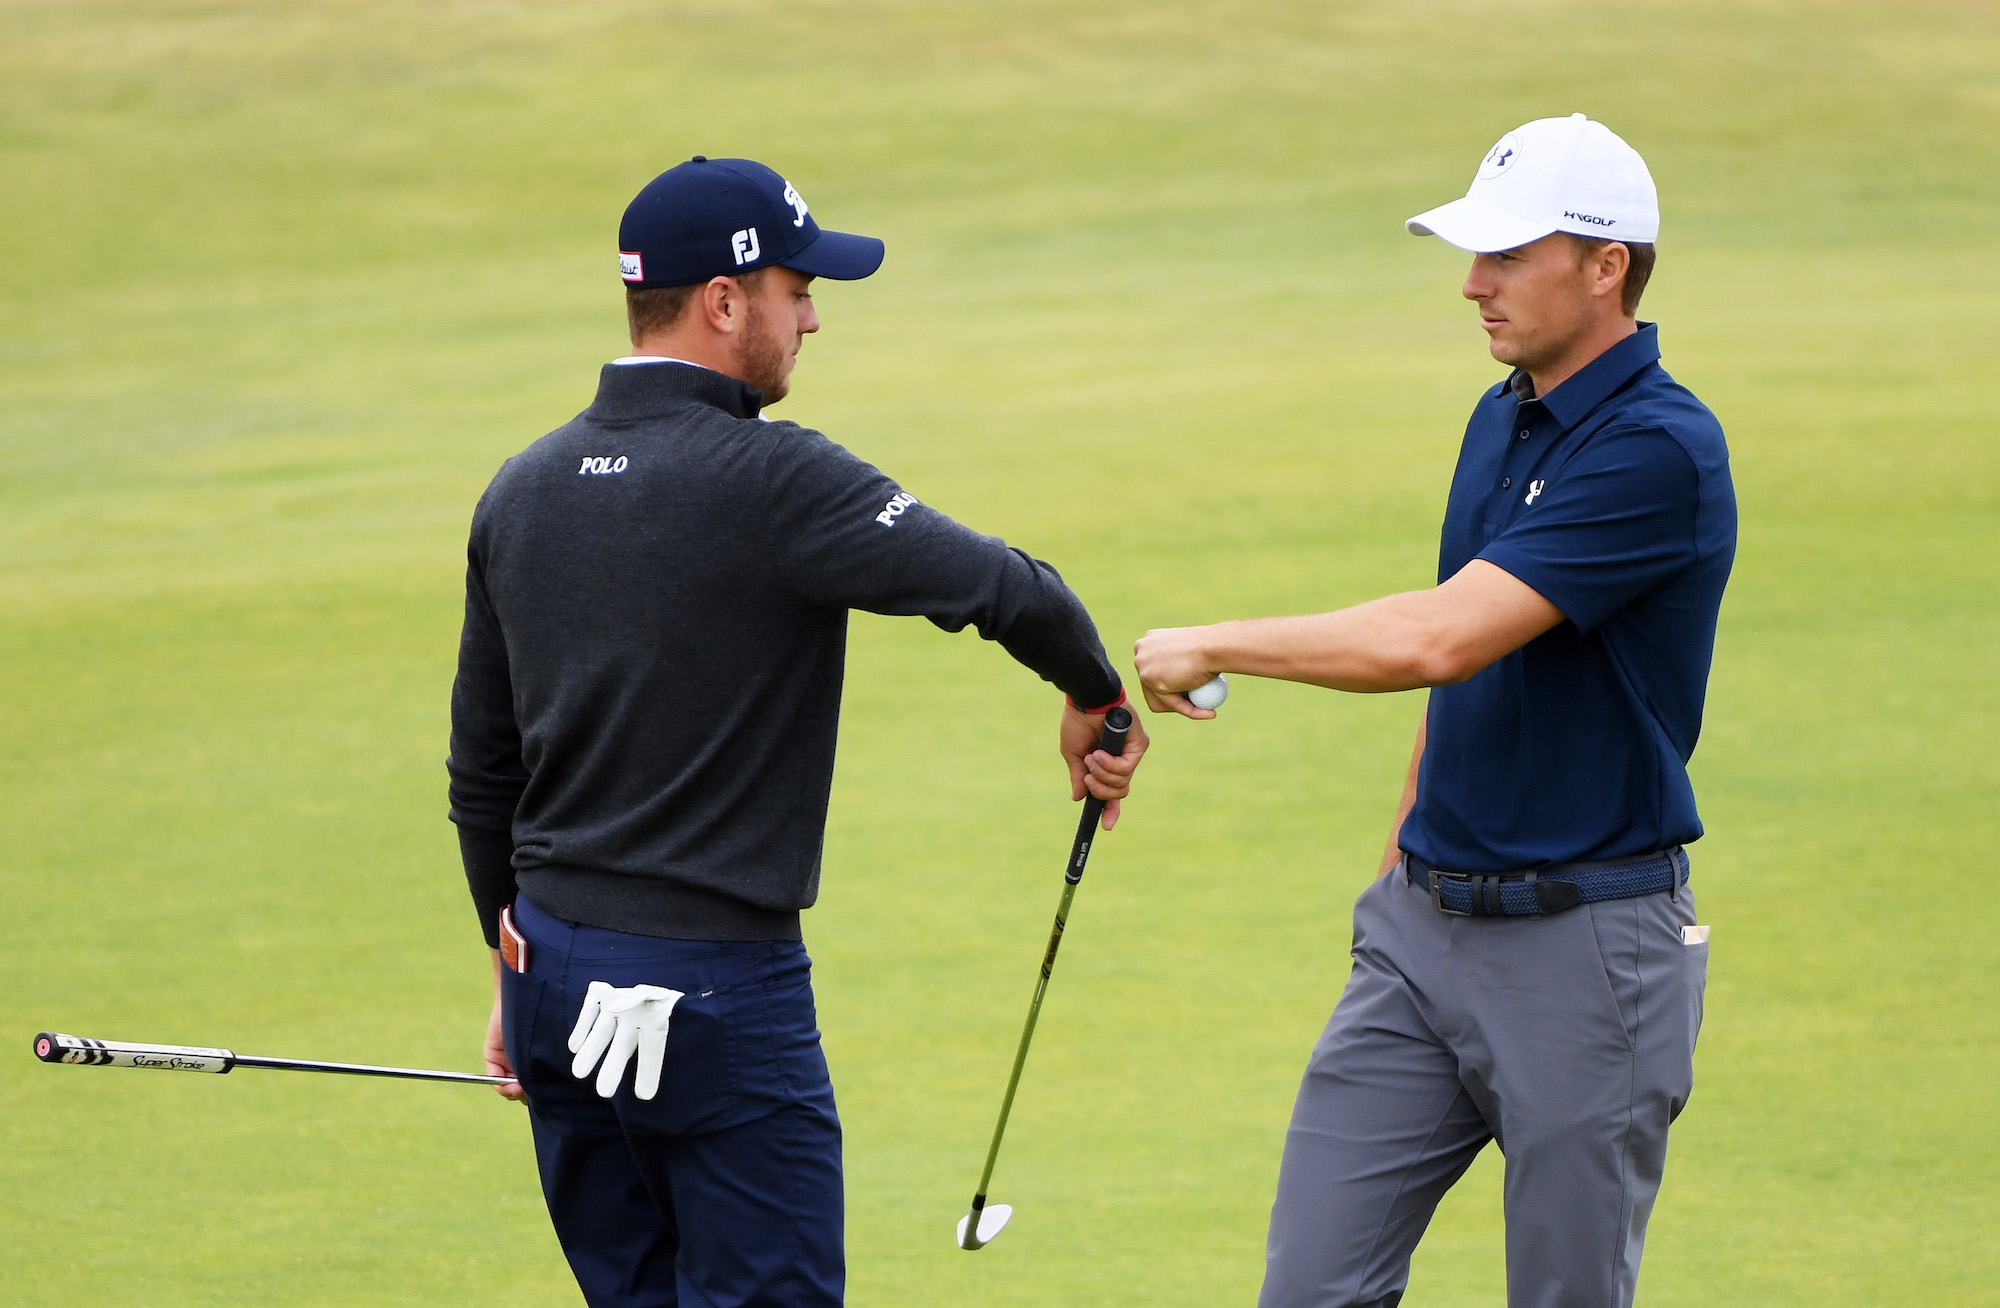 2018 Open Championship: Previews - A Fist Bump With Justin Thomas on No. 18